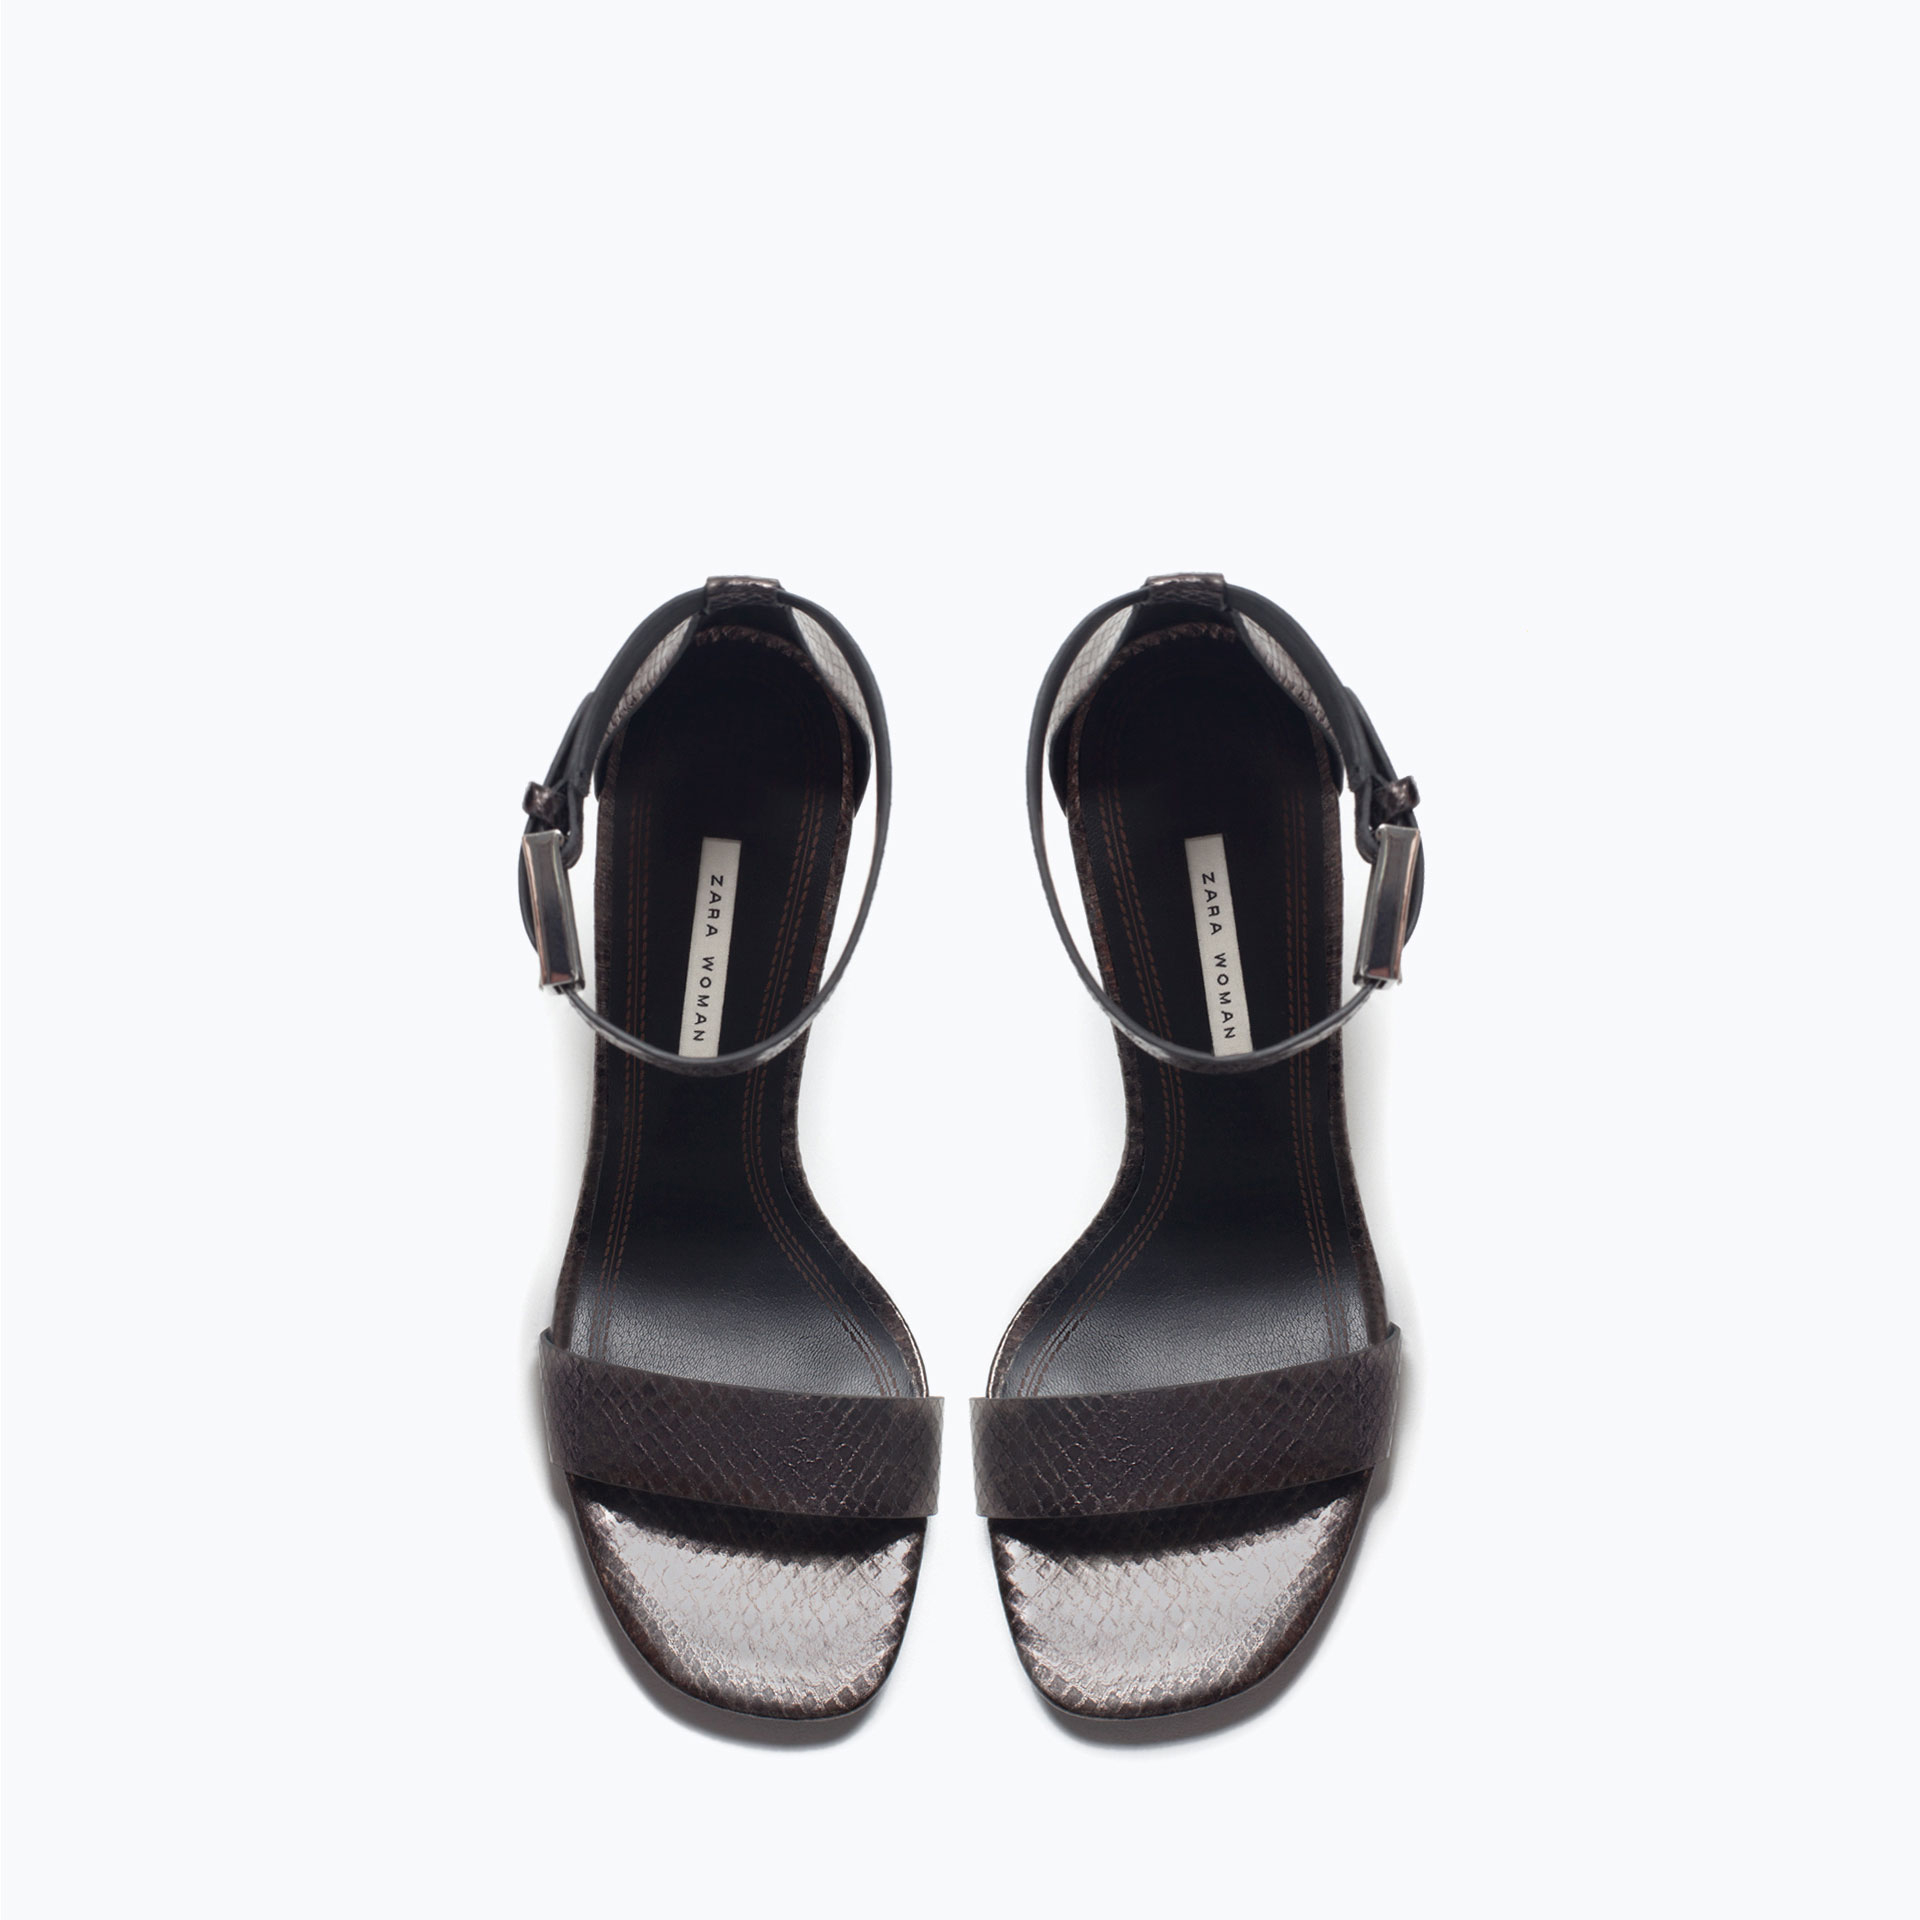 zara-charcoal-grey-leather-high-heel-sandal-with-ankle-strap-gray-product-3-378358559-normal.jpeg